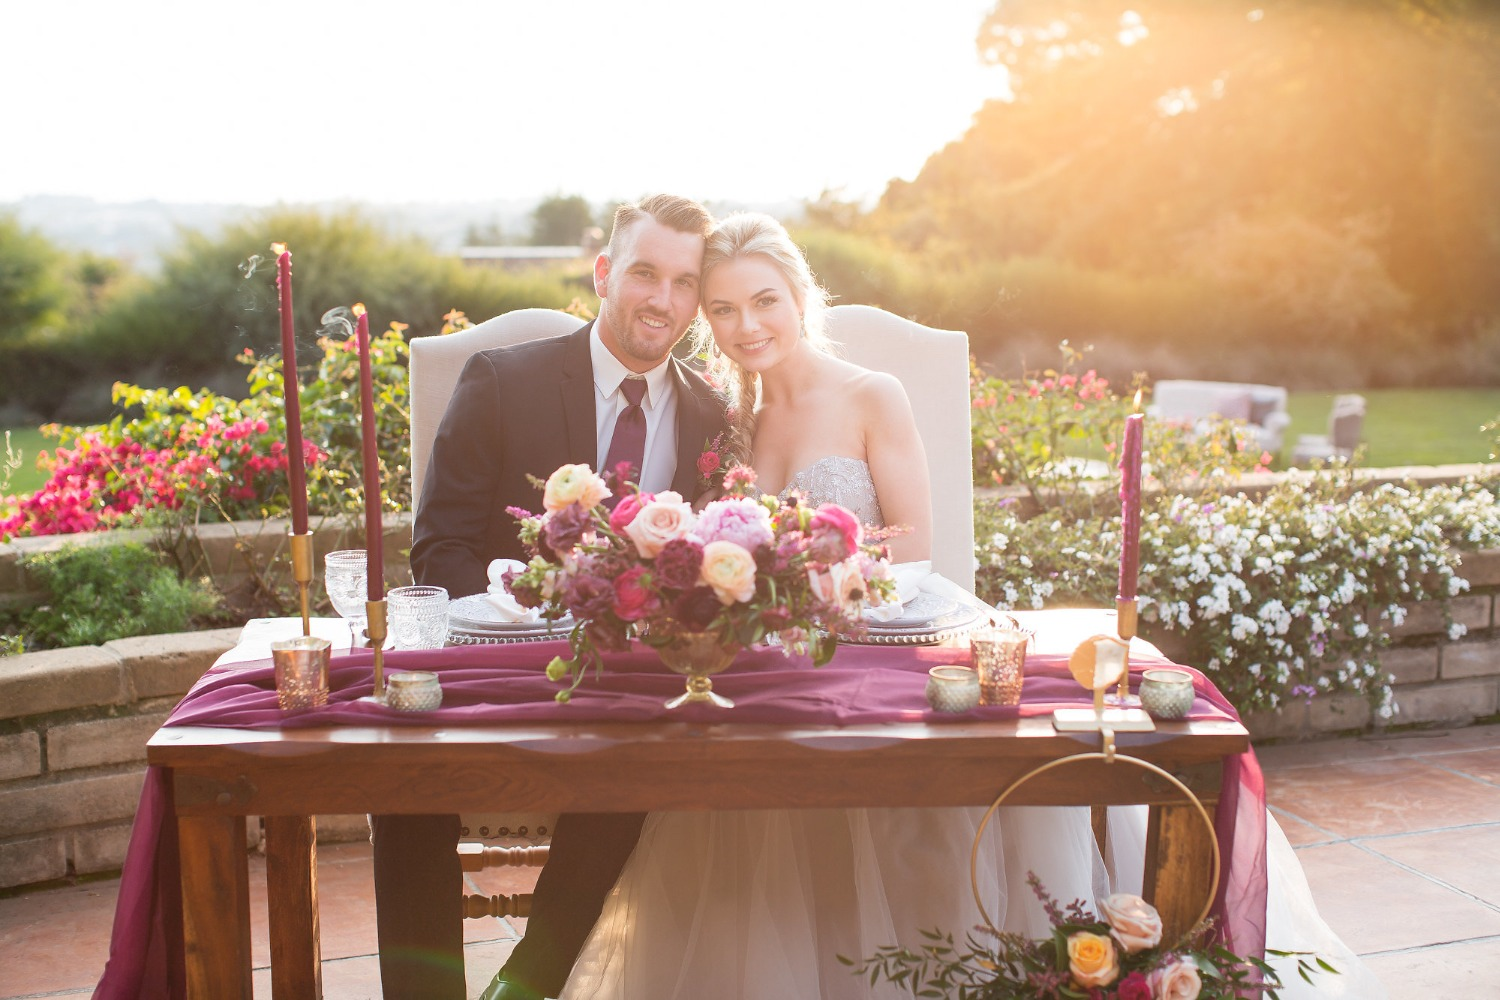 Bring on the Romance with this Dream Sunset Wedding Inspiration